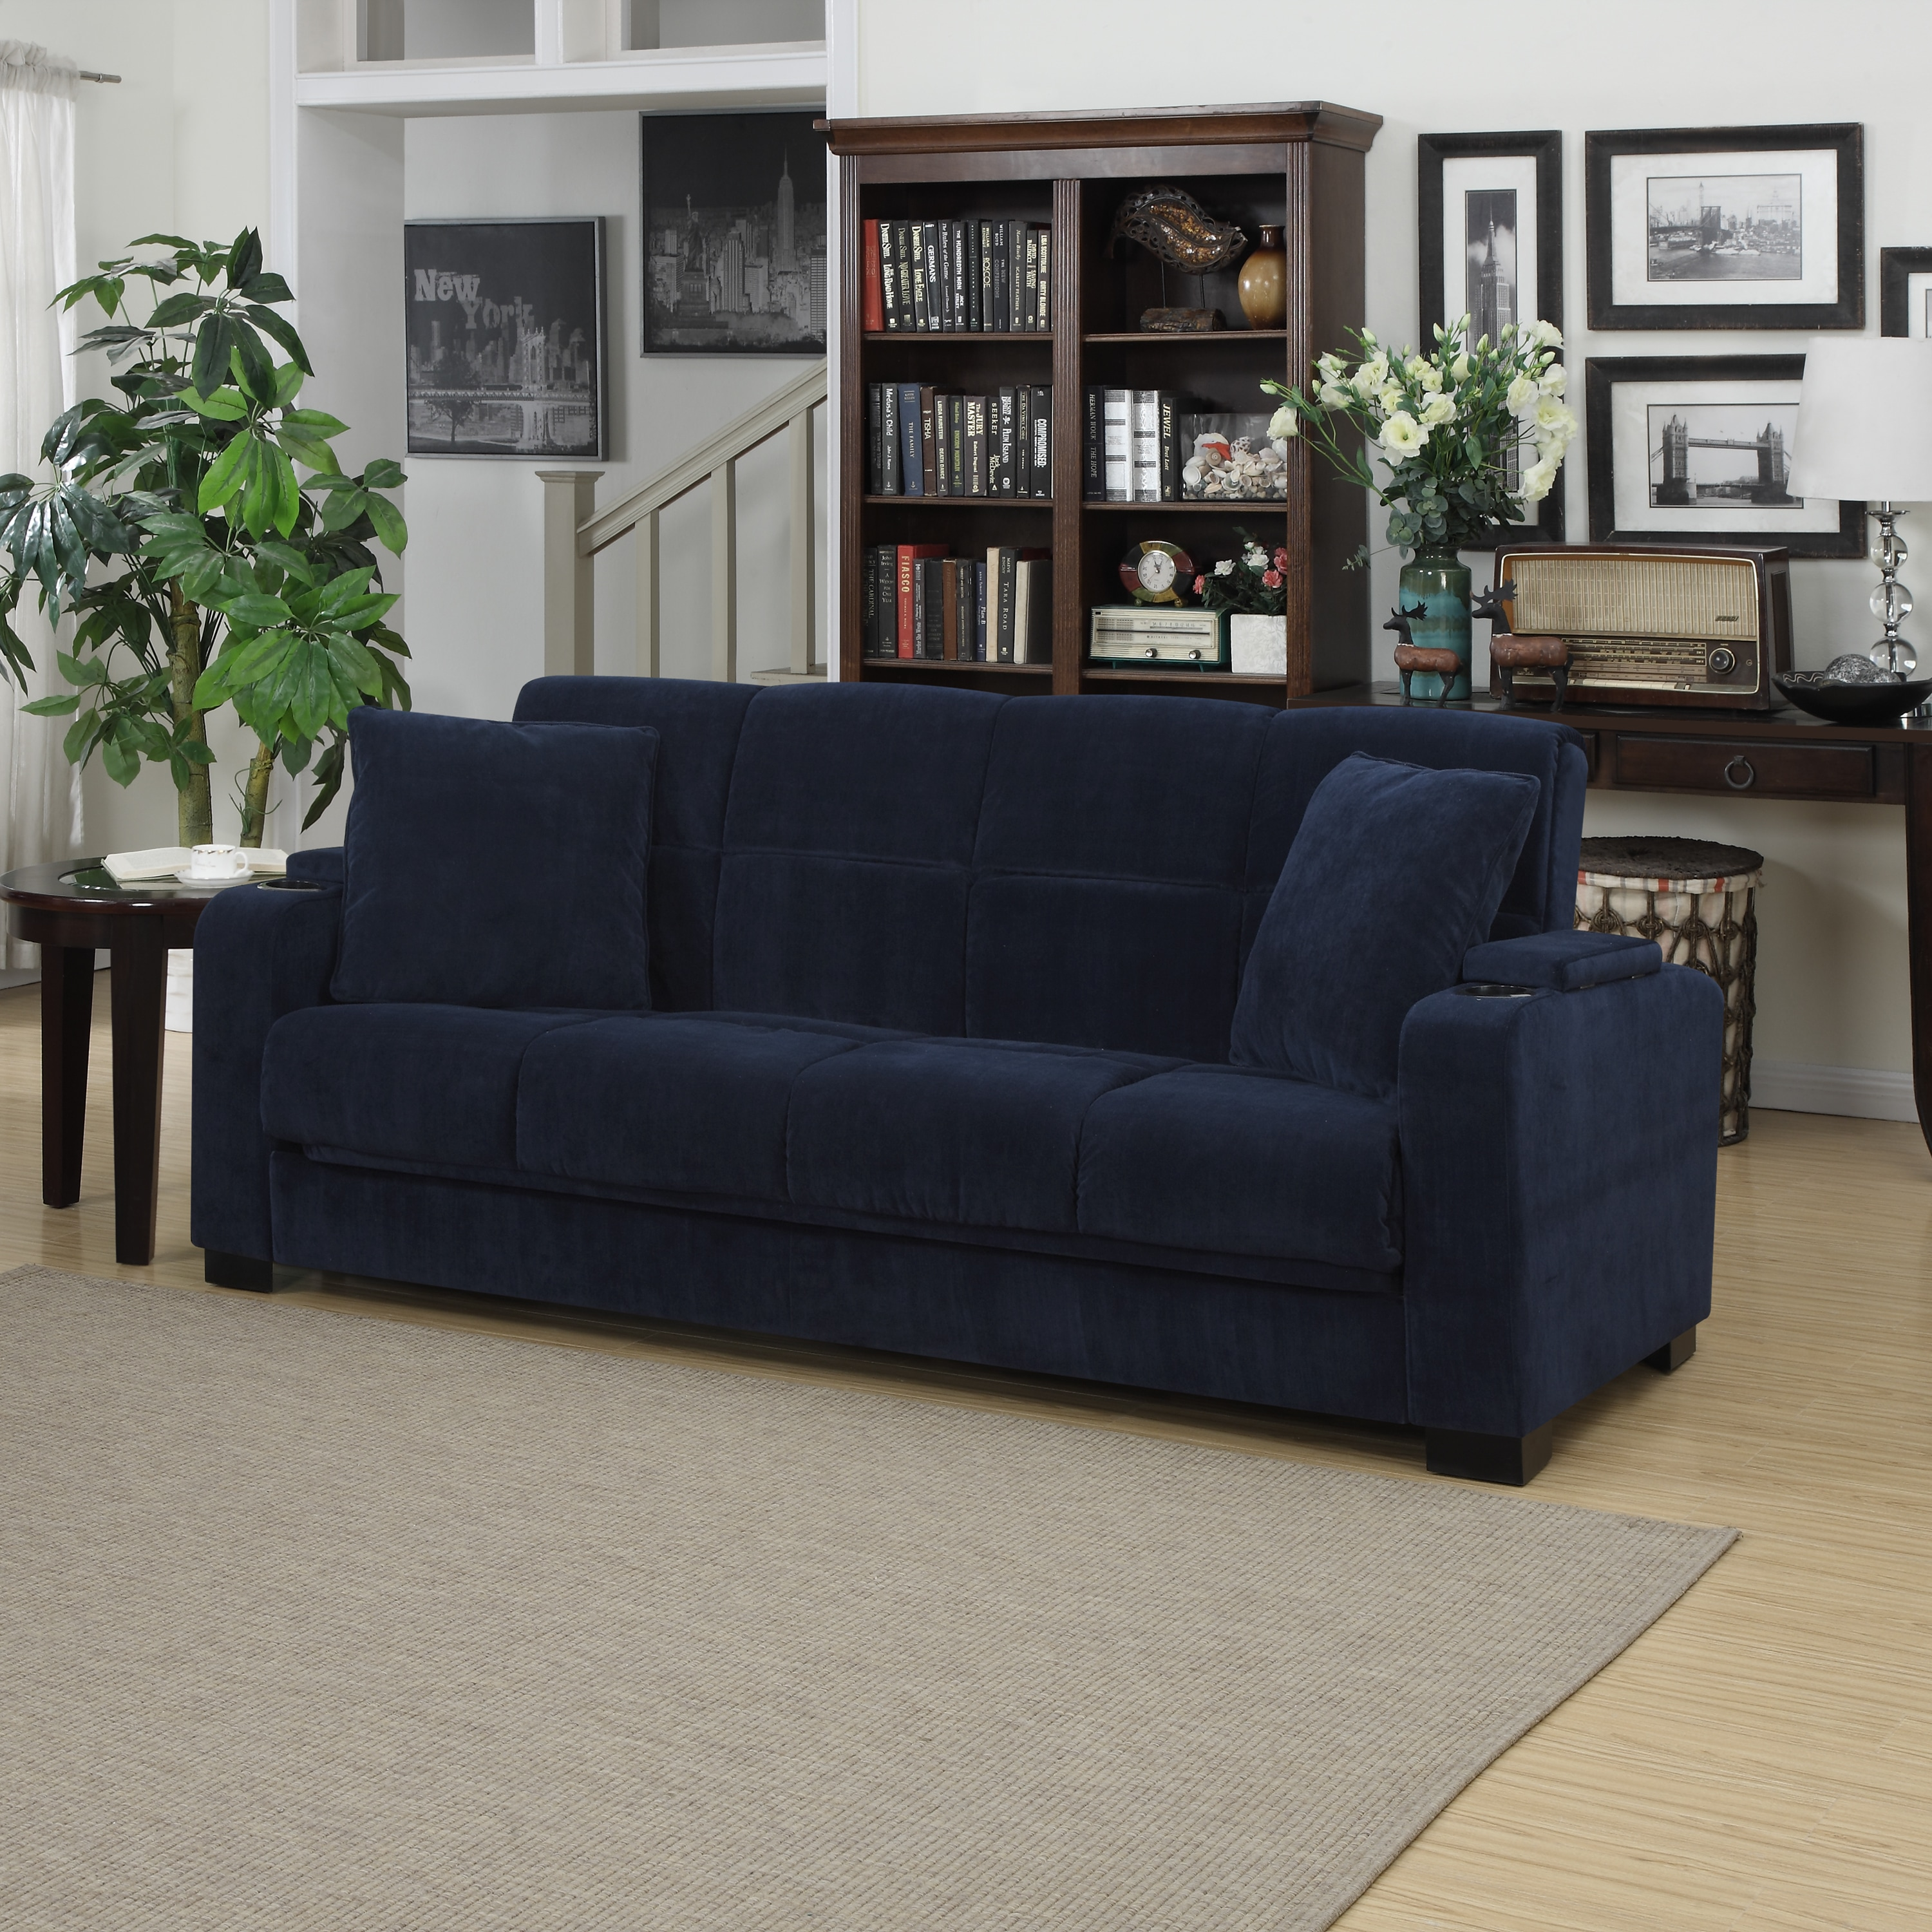 Handy Living Tevin Navy Blue Velvet Convert A Couch Storage Arm Futon Sofa On Free Shipping Today Com 20603147